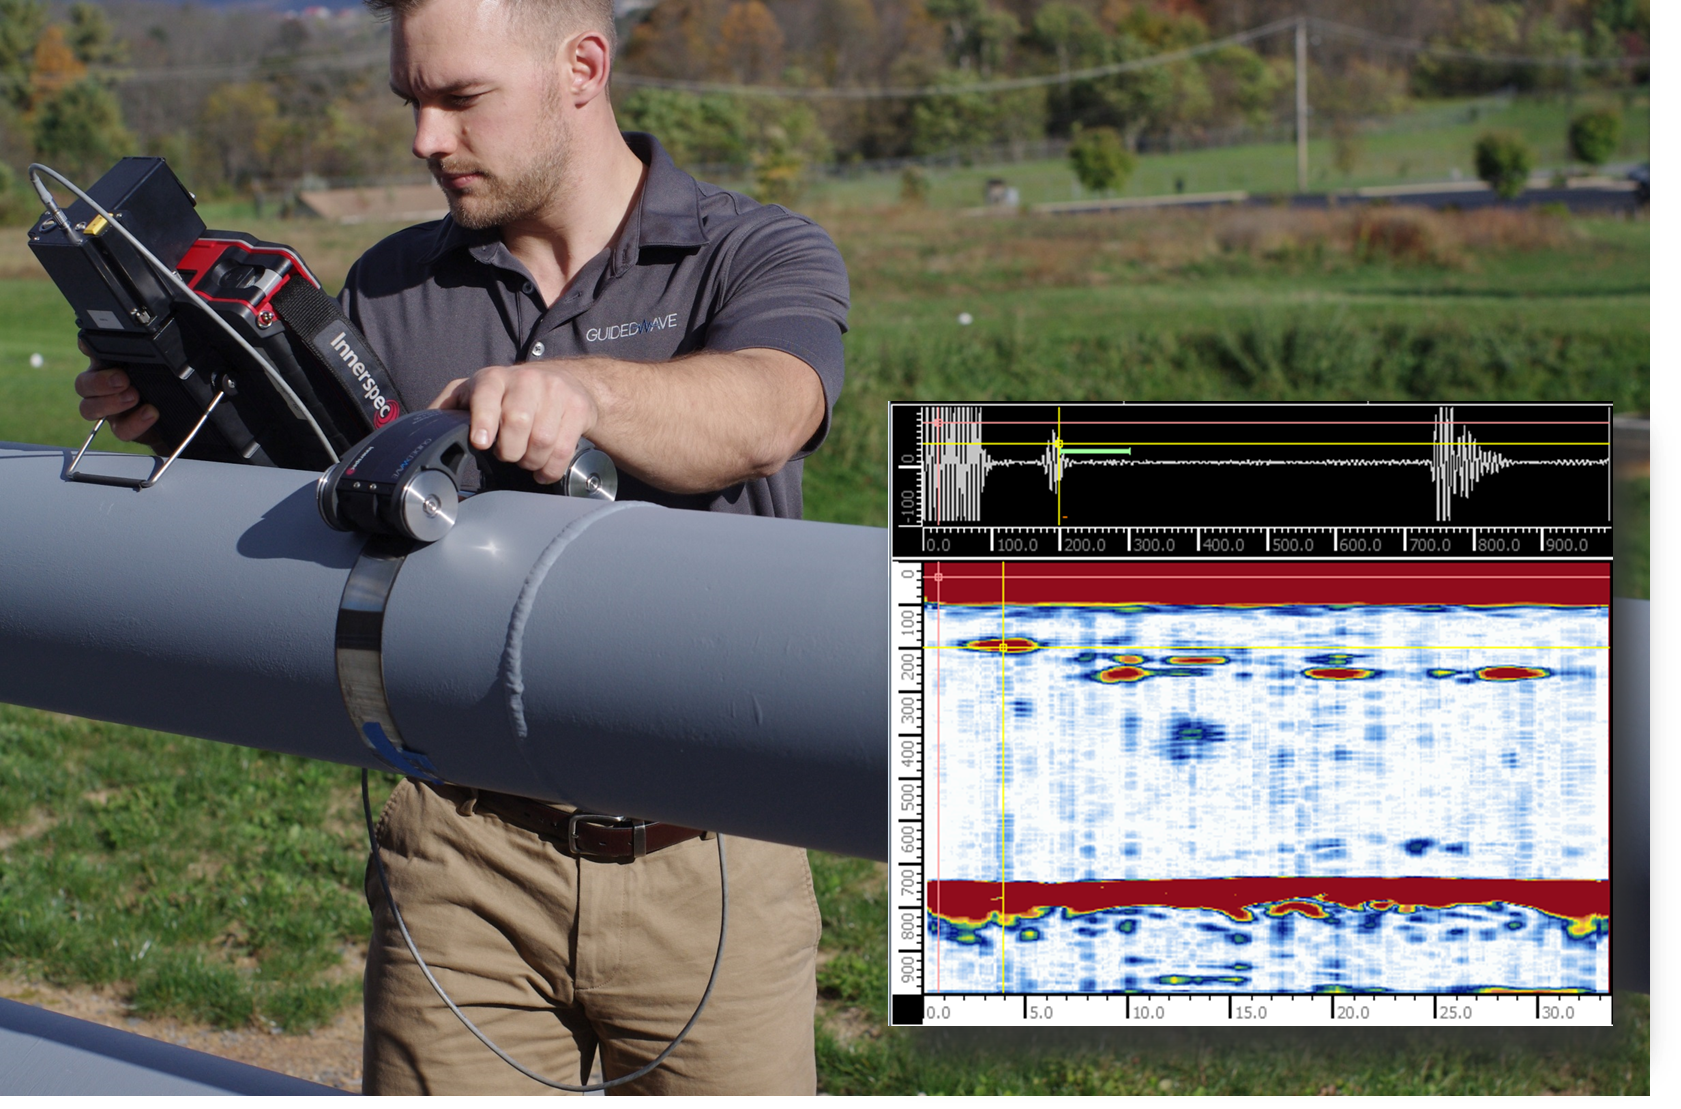 Medium-range guided wave technology can provide higher-resolution scans of pipe segments than long-range guided wave systems.